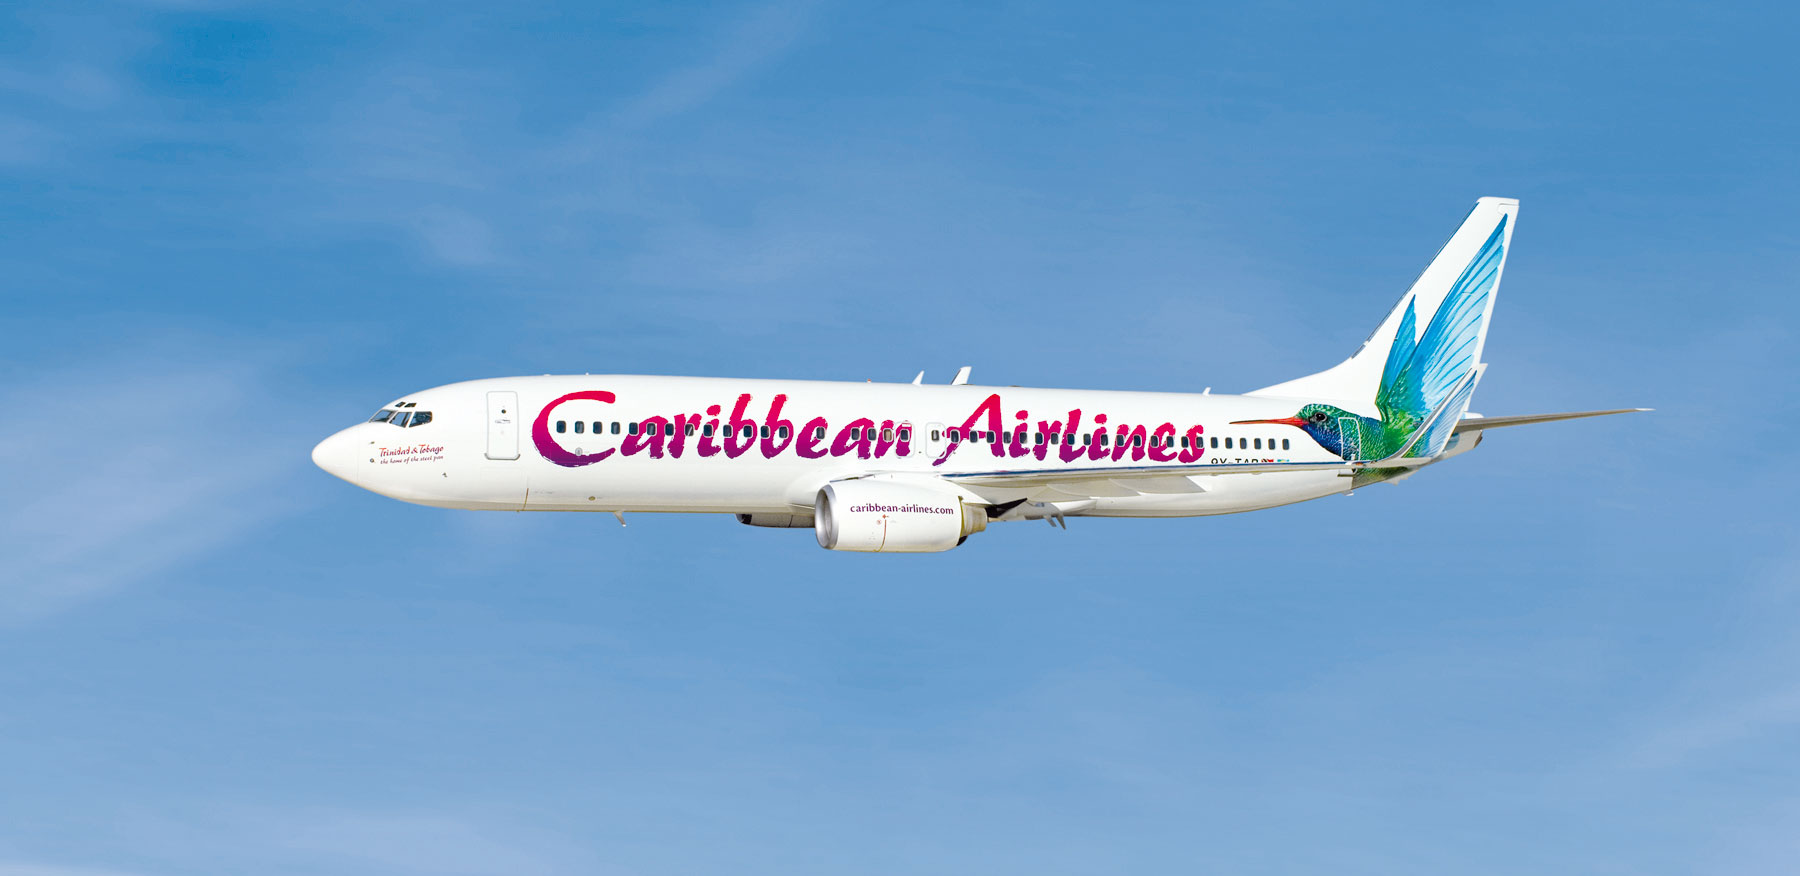 CARIBBEAN AIRLINES LAUNCHES NON-STOP SERVICE  FROM BARBADOS TO JFK, NEW YORK